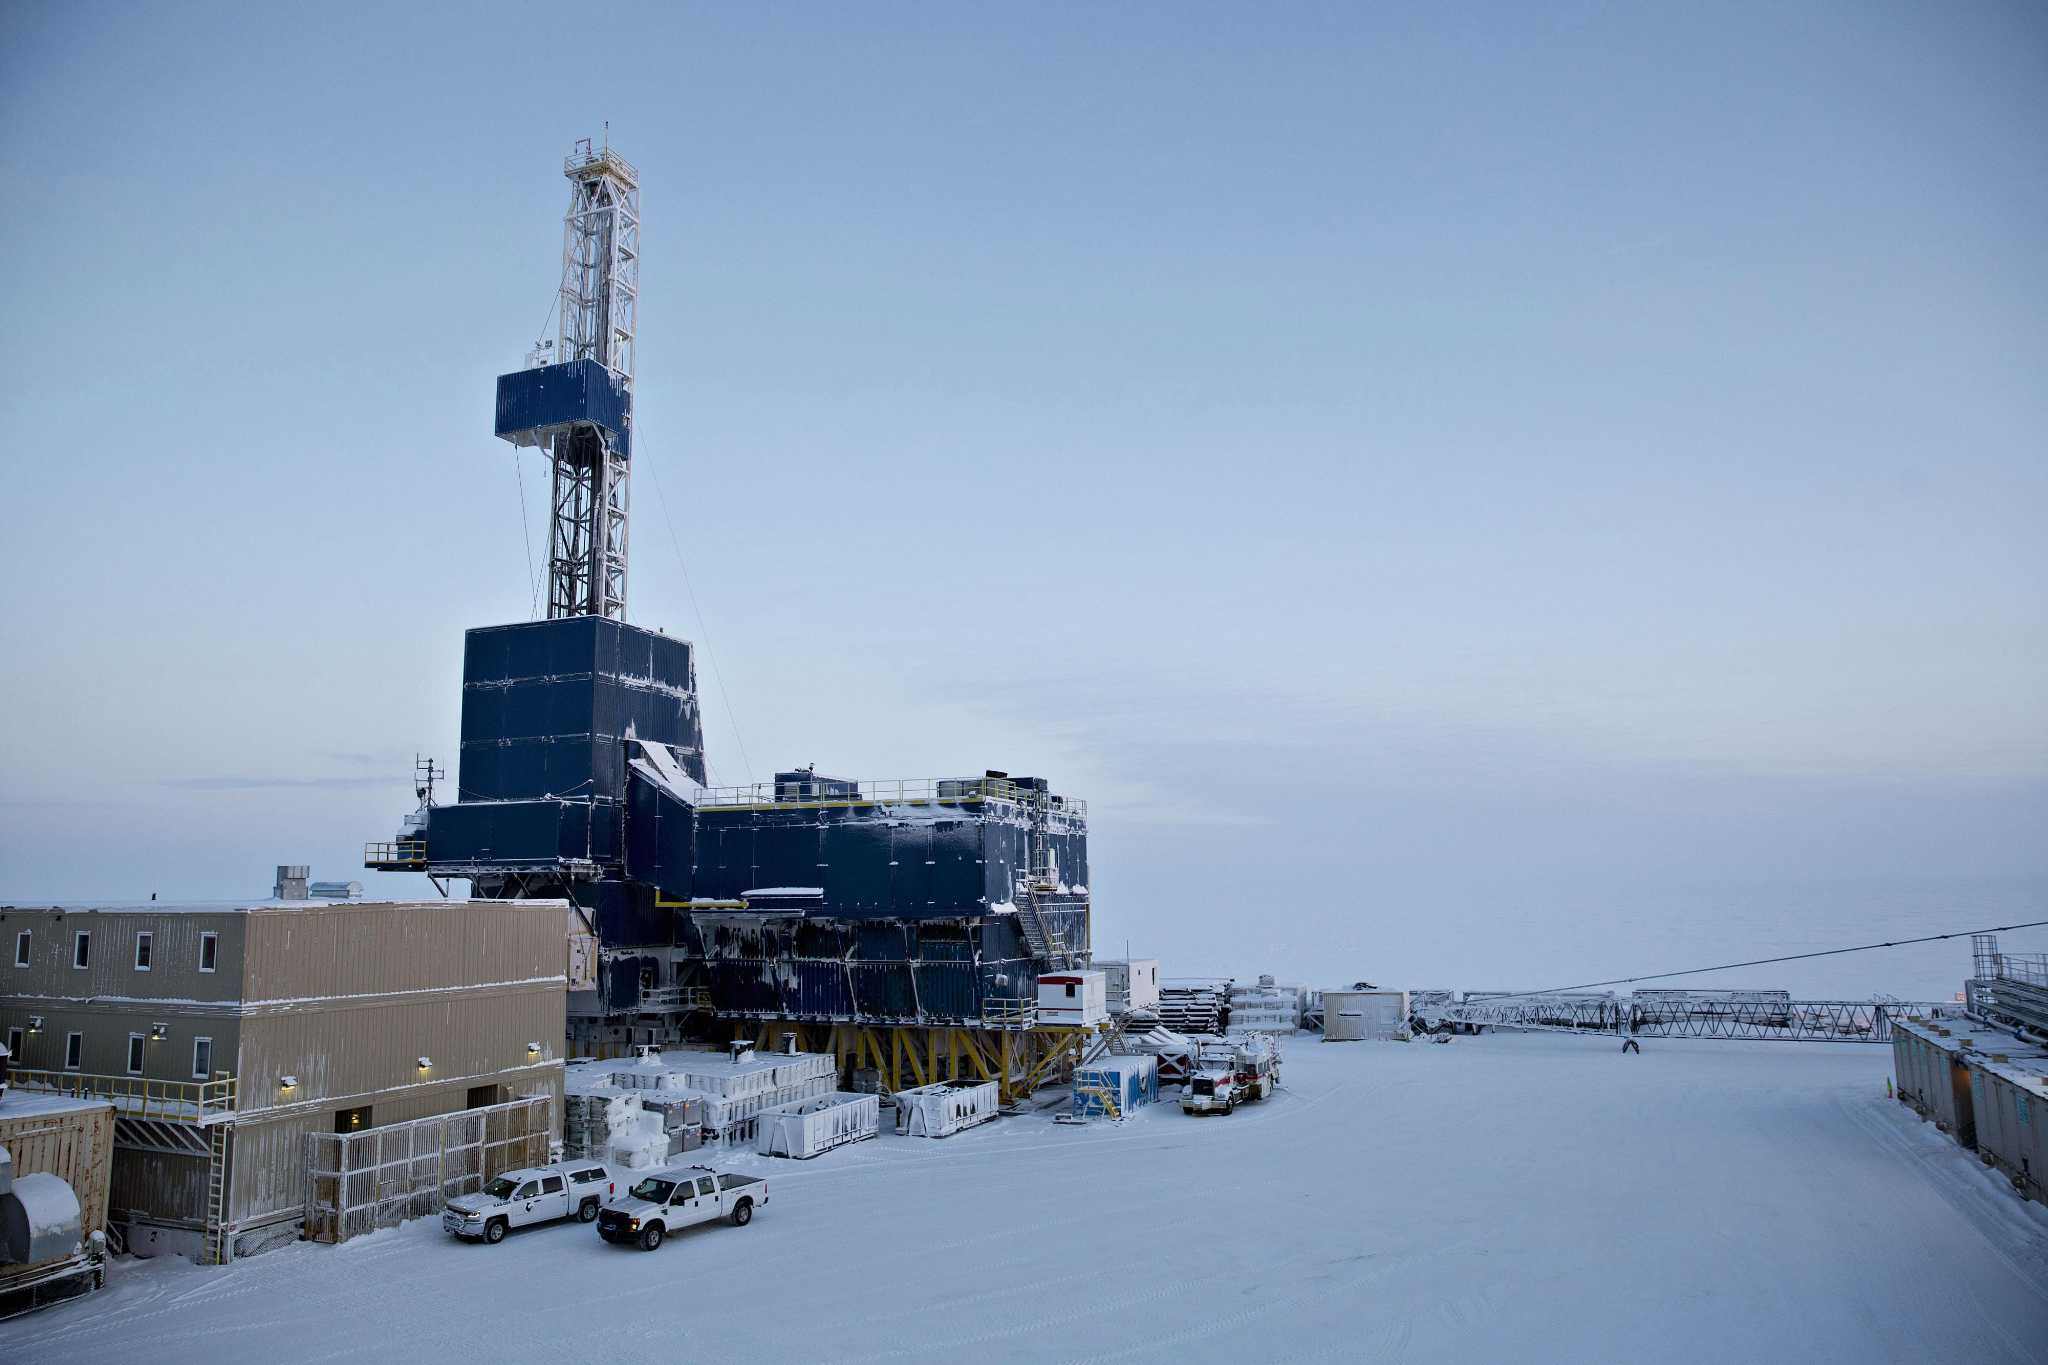 the benefits of the alaskan drilling project to the economy of america - maximize economic and social benefits to society - provide long-term sustainable benefits for future generations alaska's experience with arctic oil and gas development.